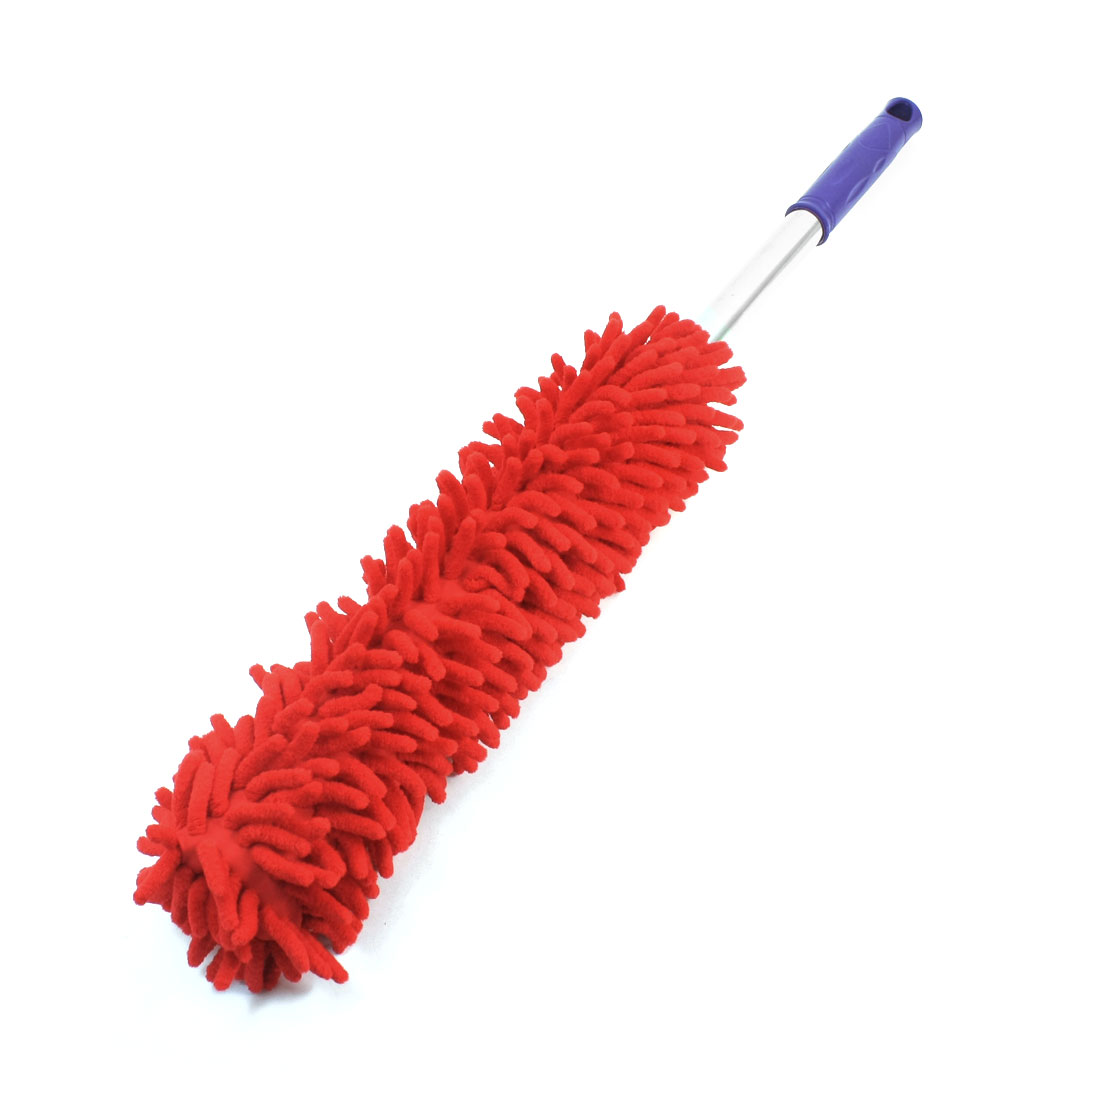 Truck Car SUV Cleaning Wash Brush Dust Dirt Dusting Handy Tool Chenille Microfiber Duster Red